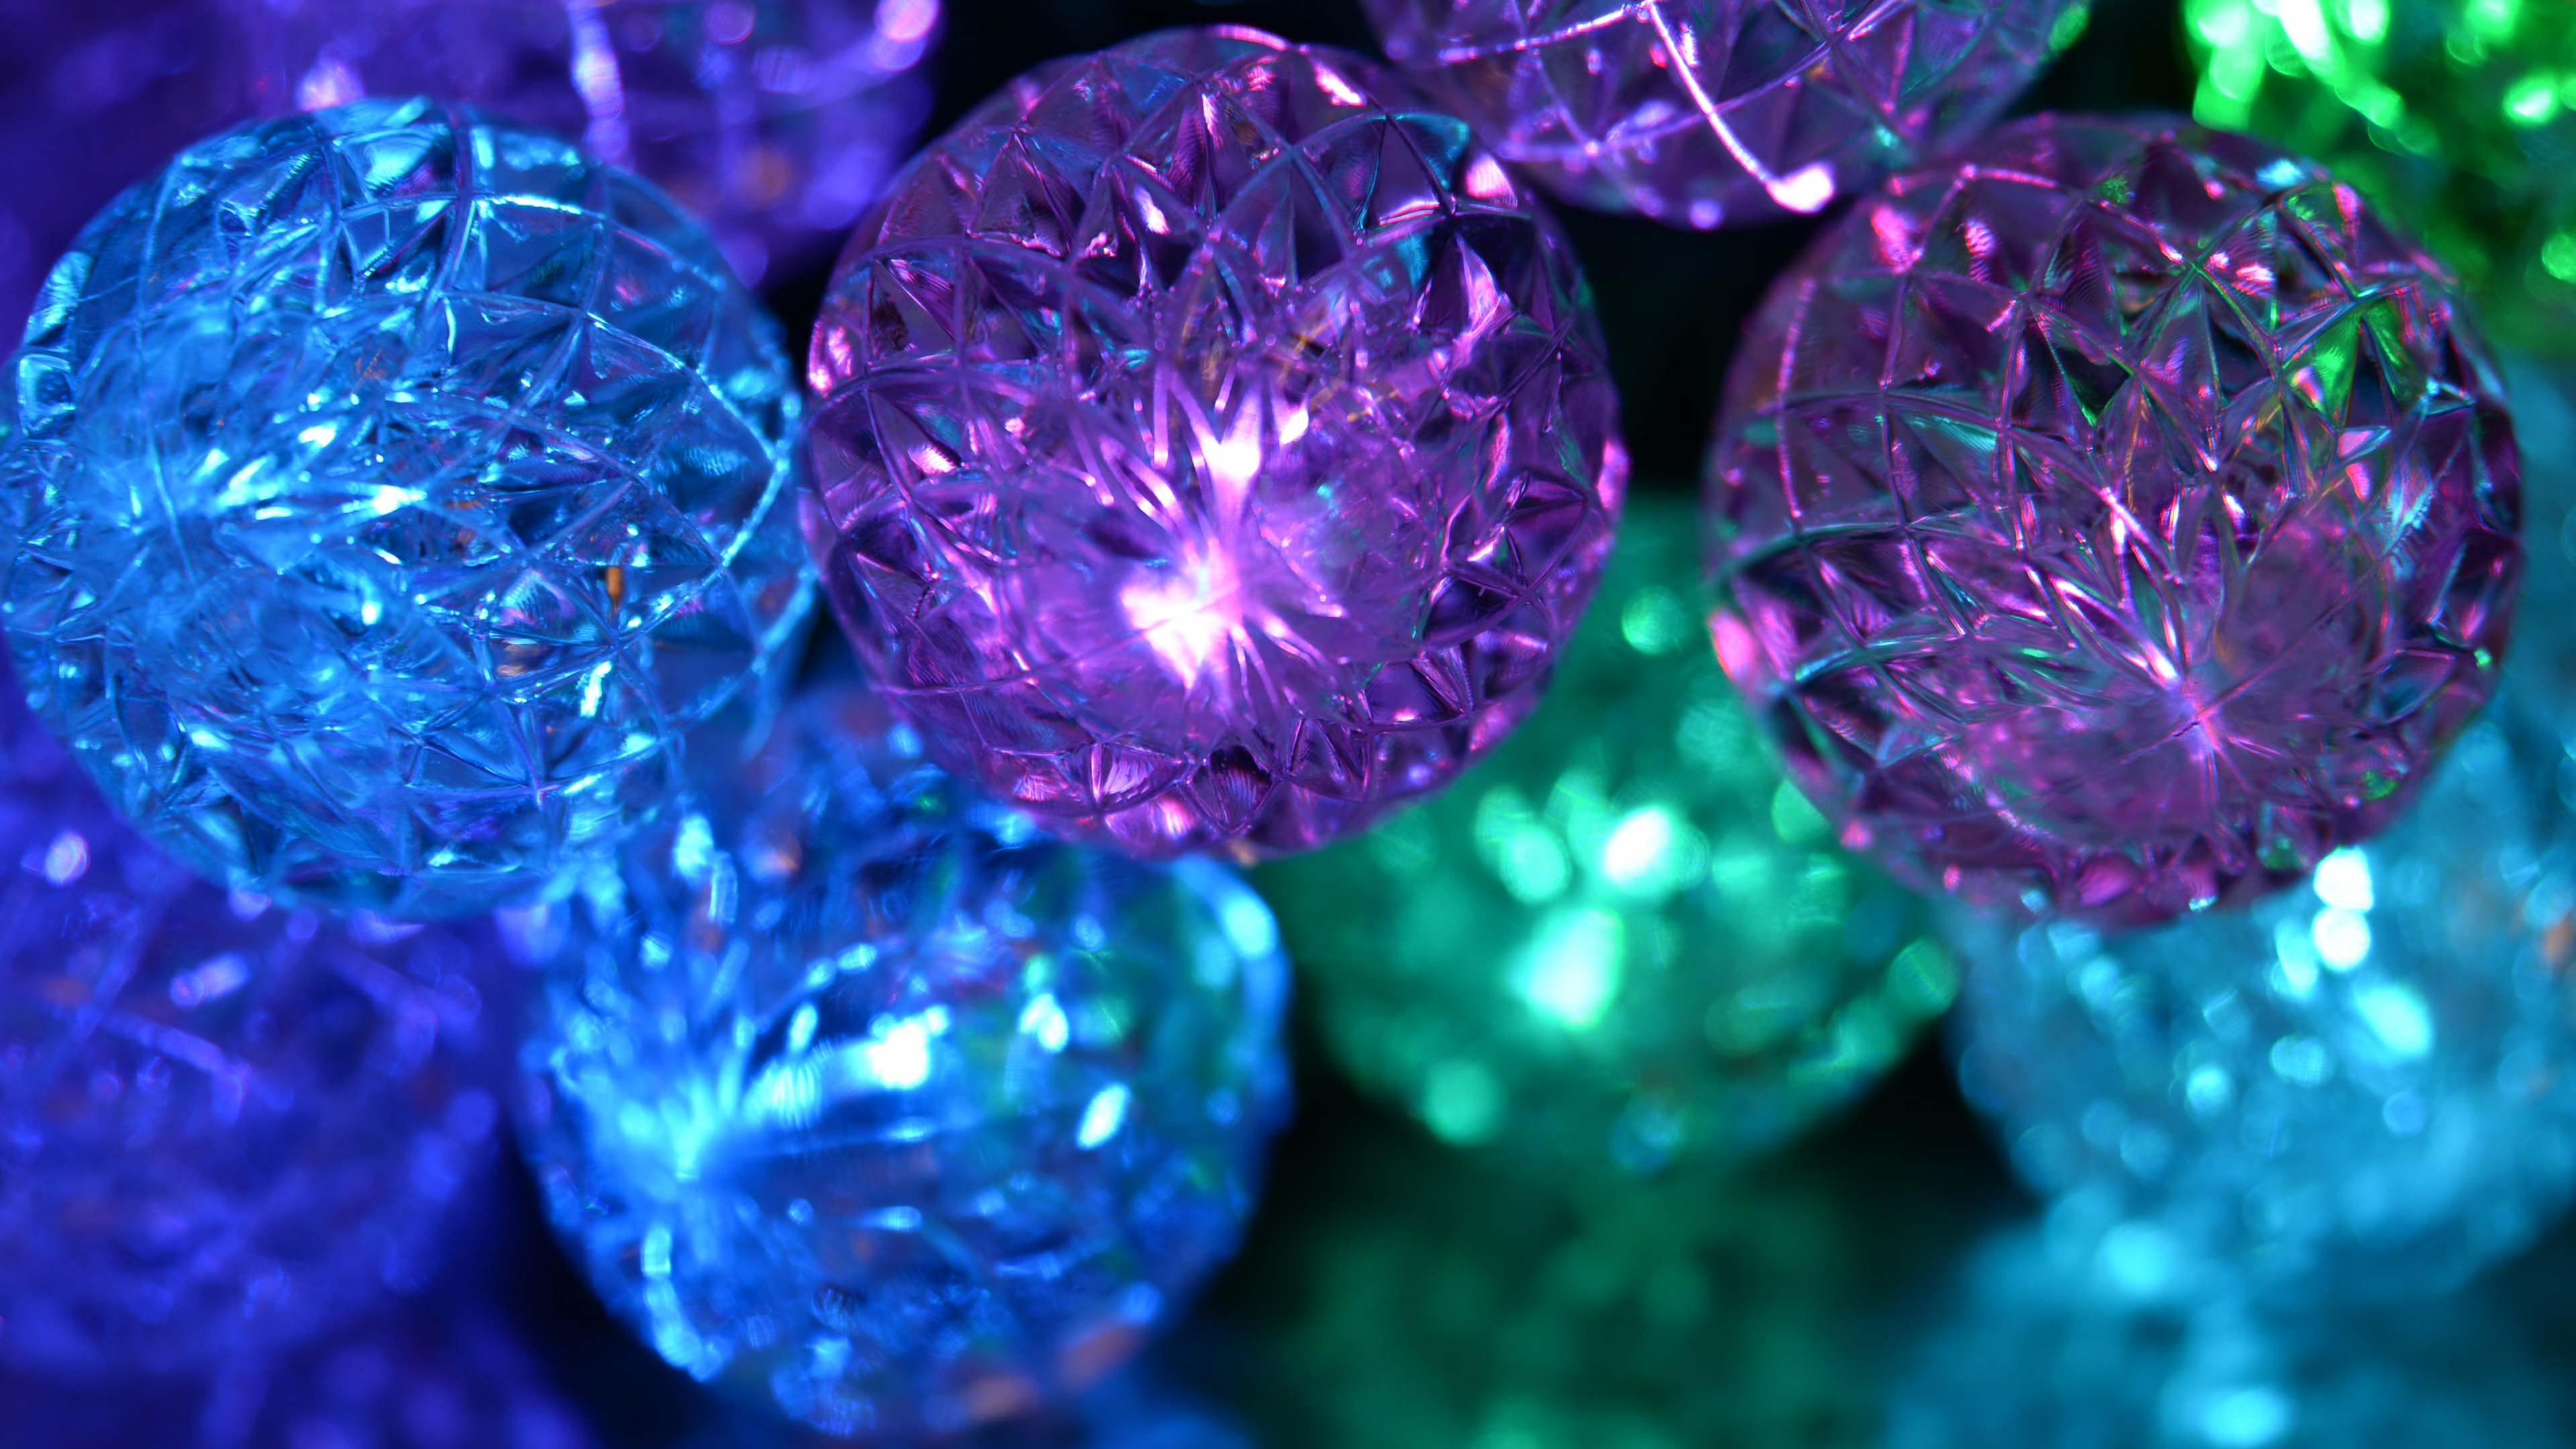 3840x2160 wallpaper Decorations, ball, glitter, party